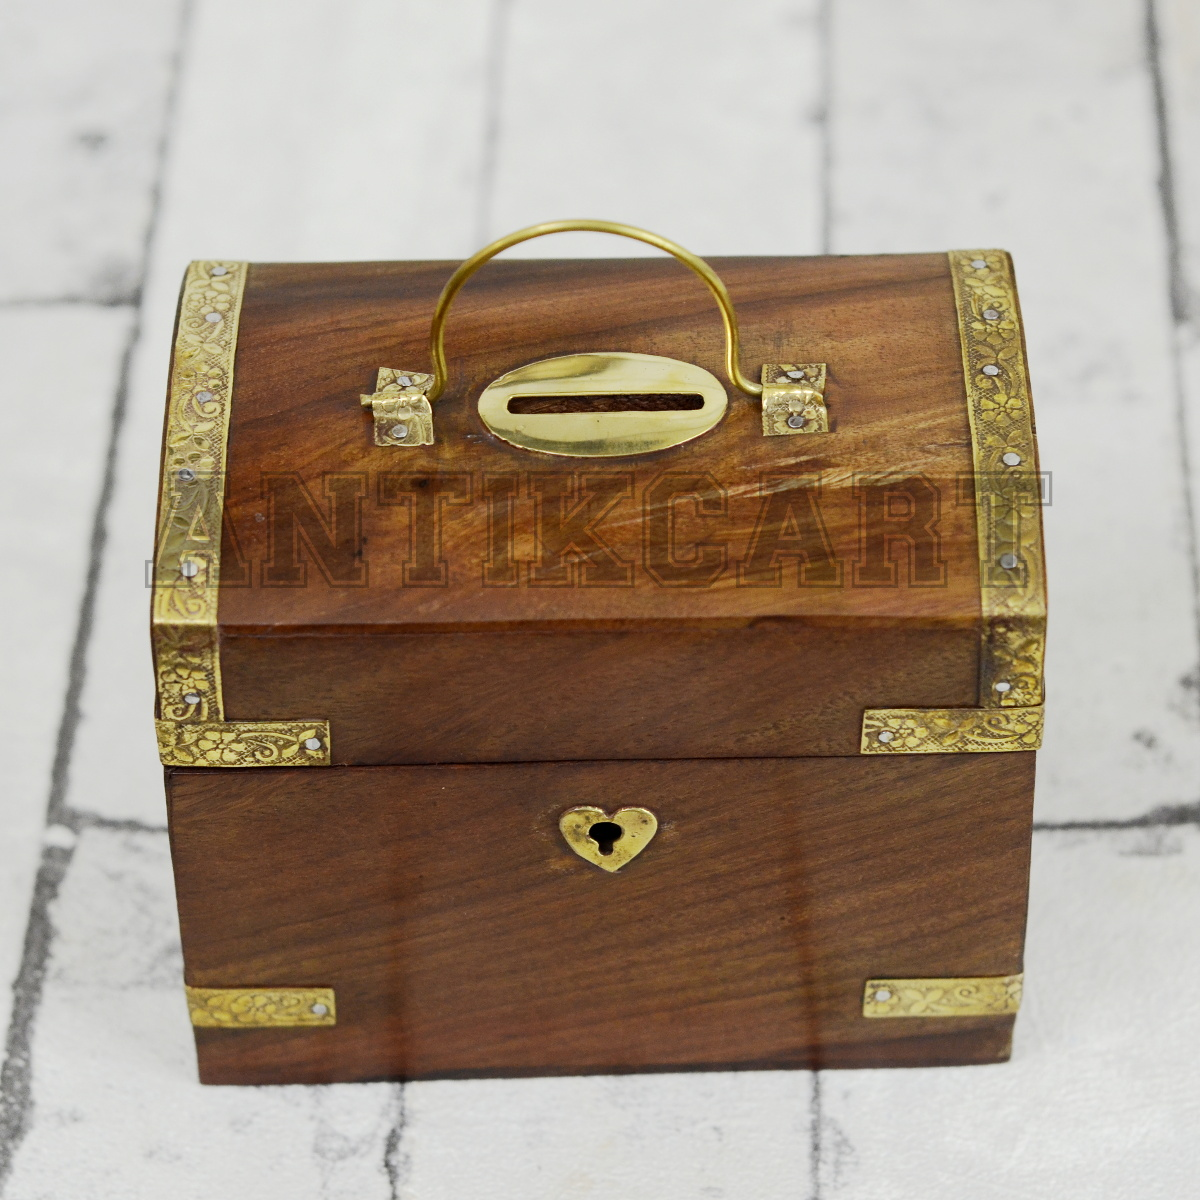 Treasure Chest Model Coin Collection Bank Antikcart